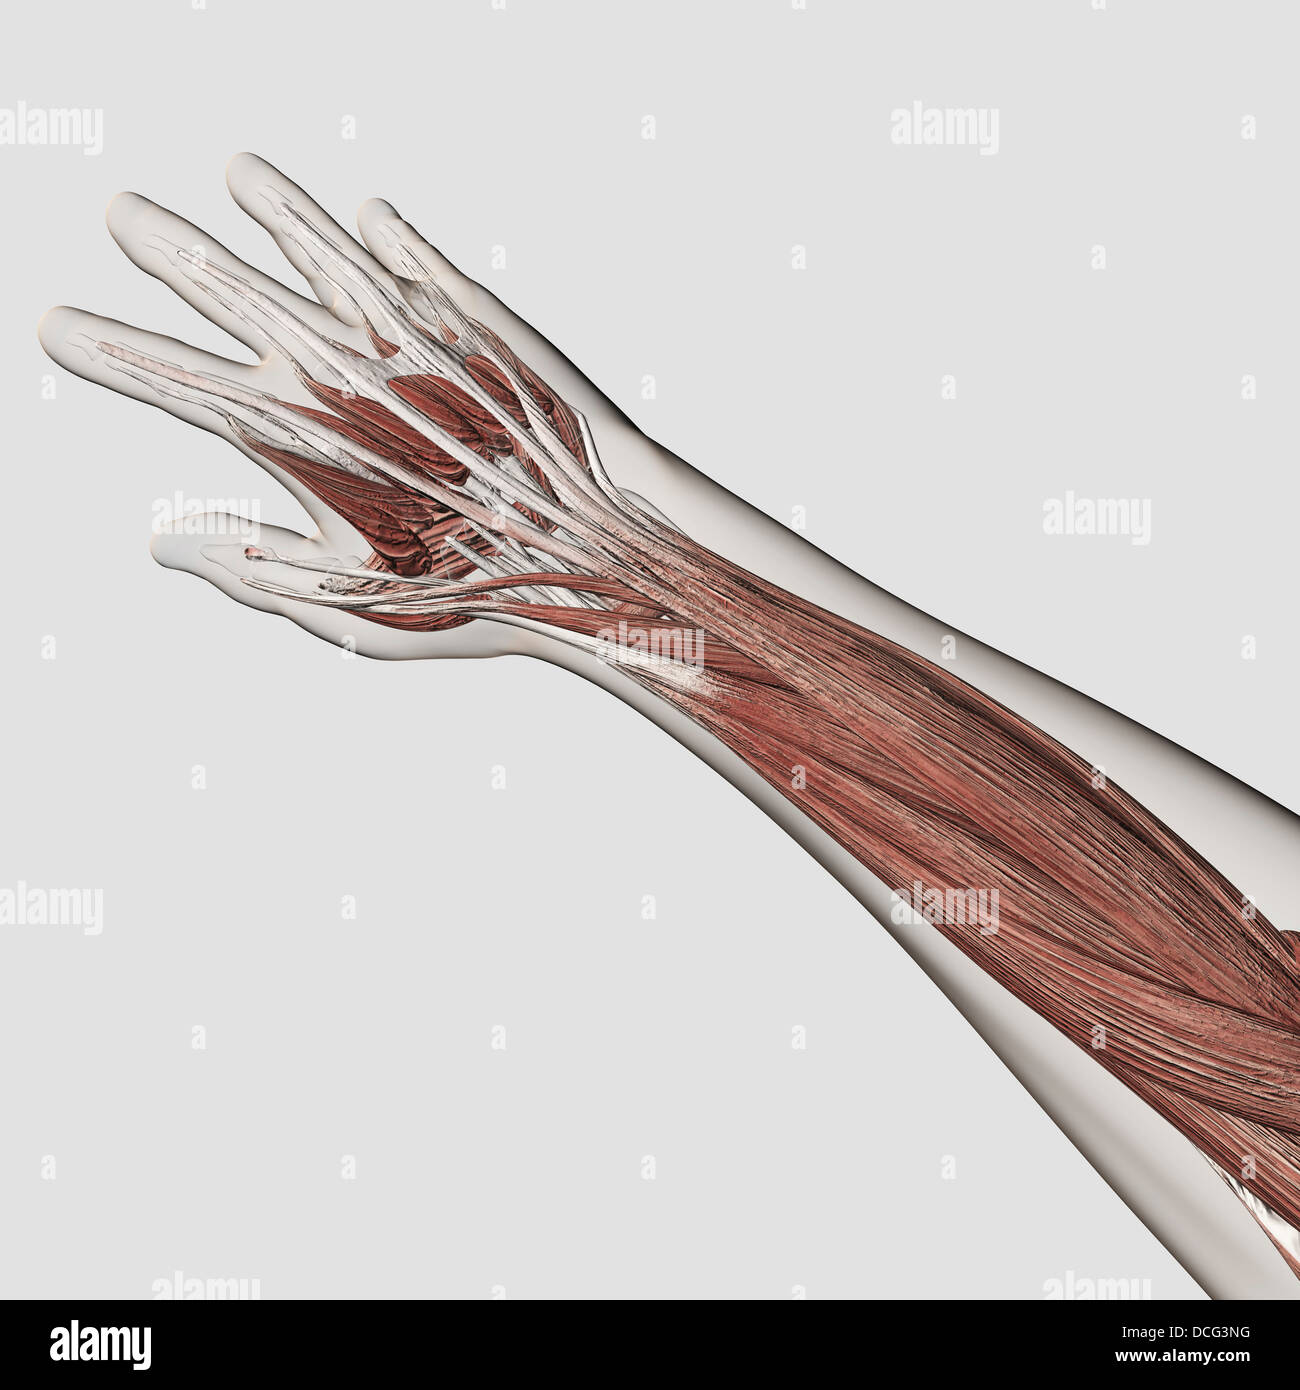 Muscle Anatomy Of Human Arm And Hand Stock Photo 59361164 Alamy